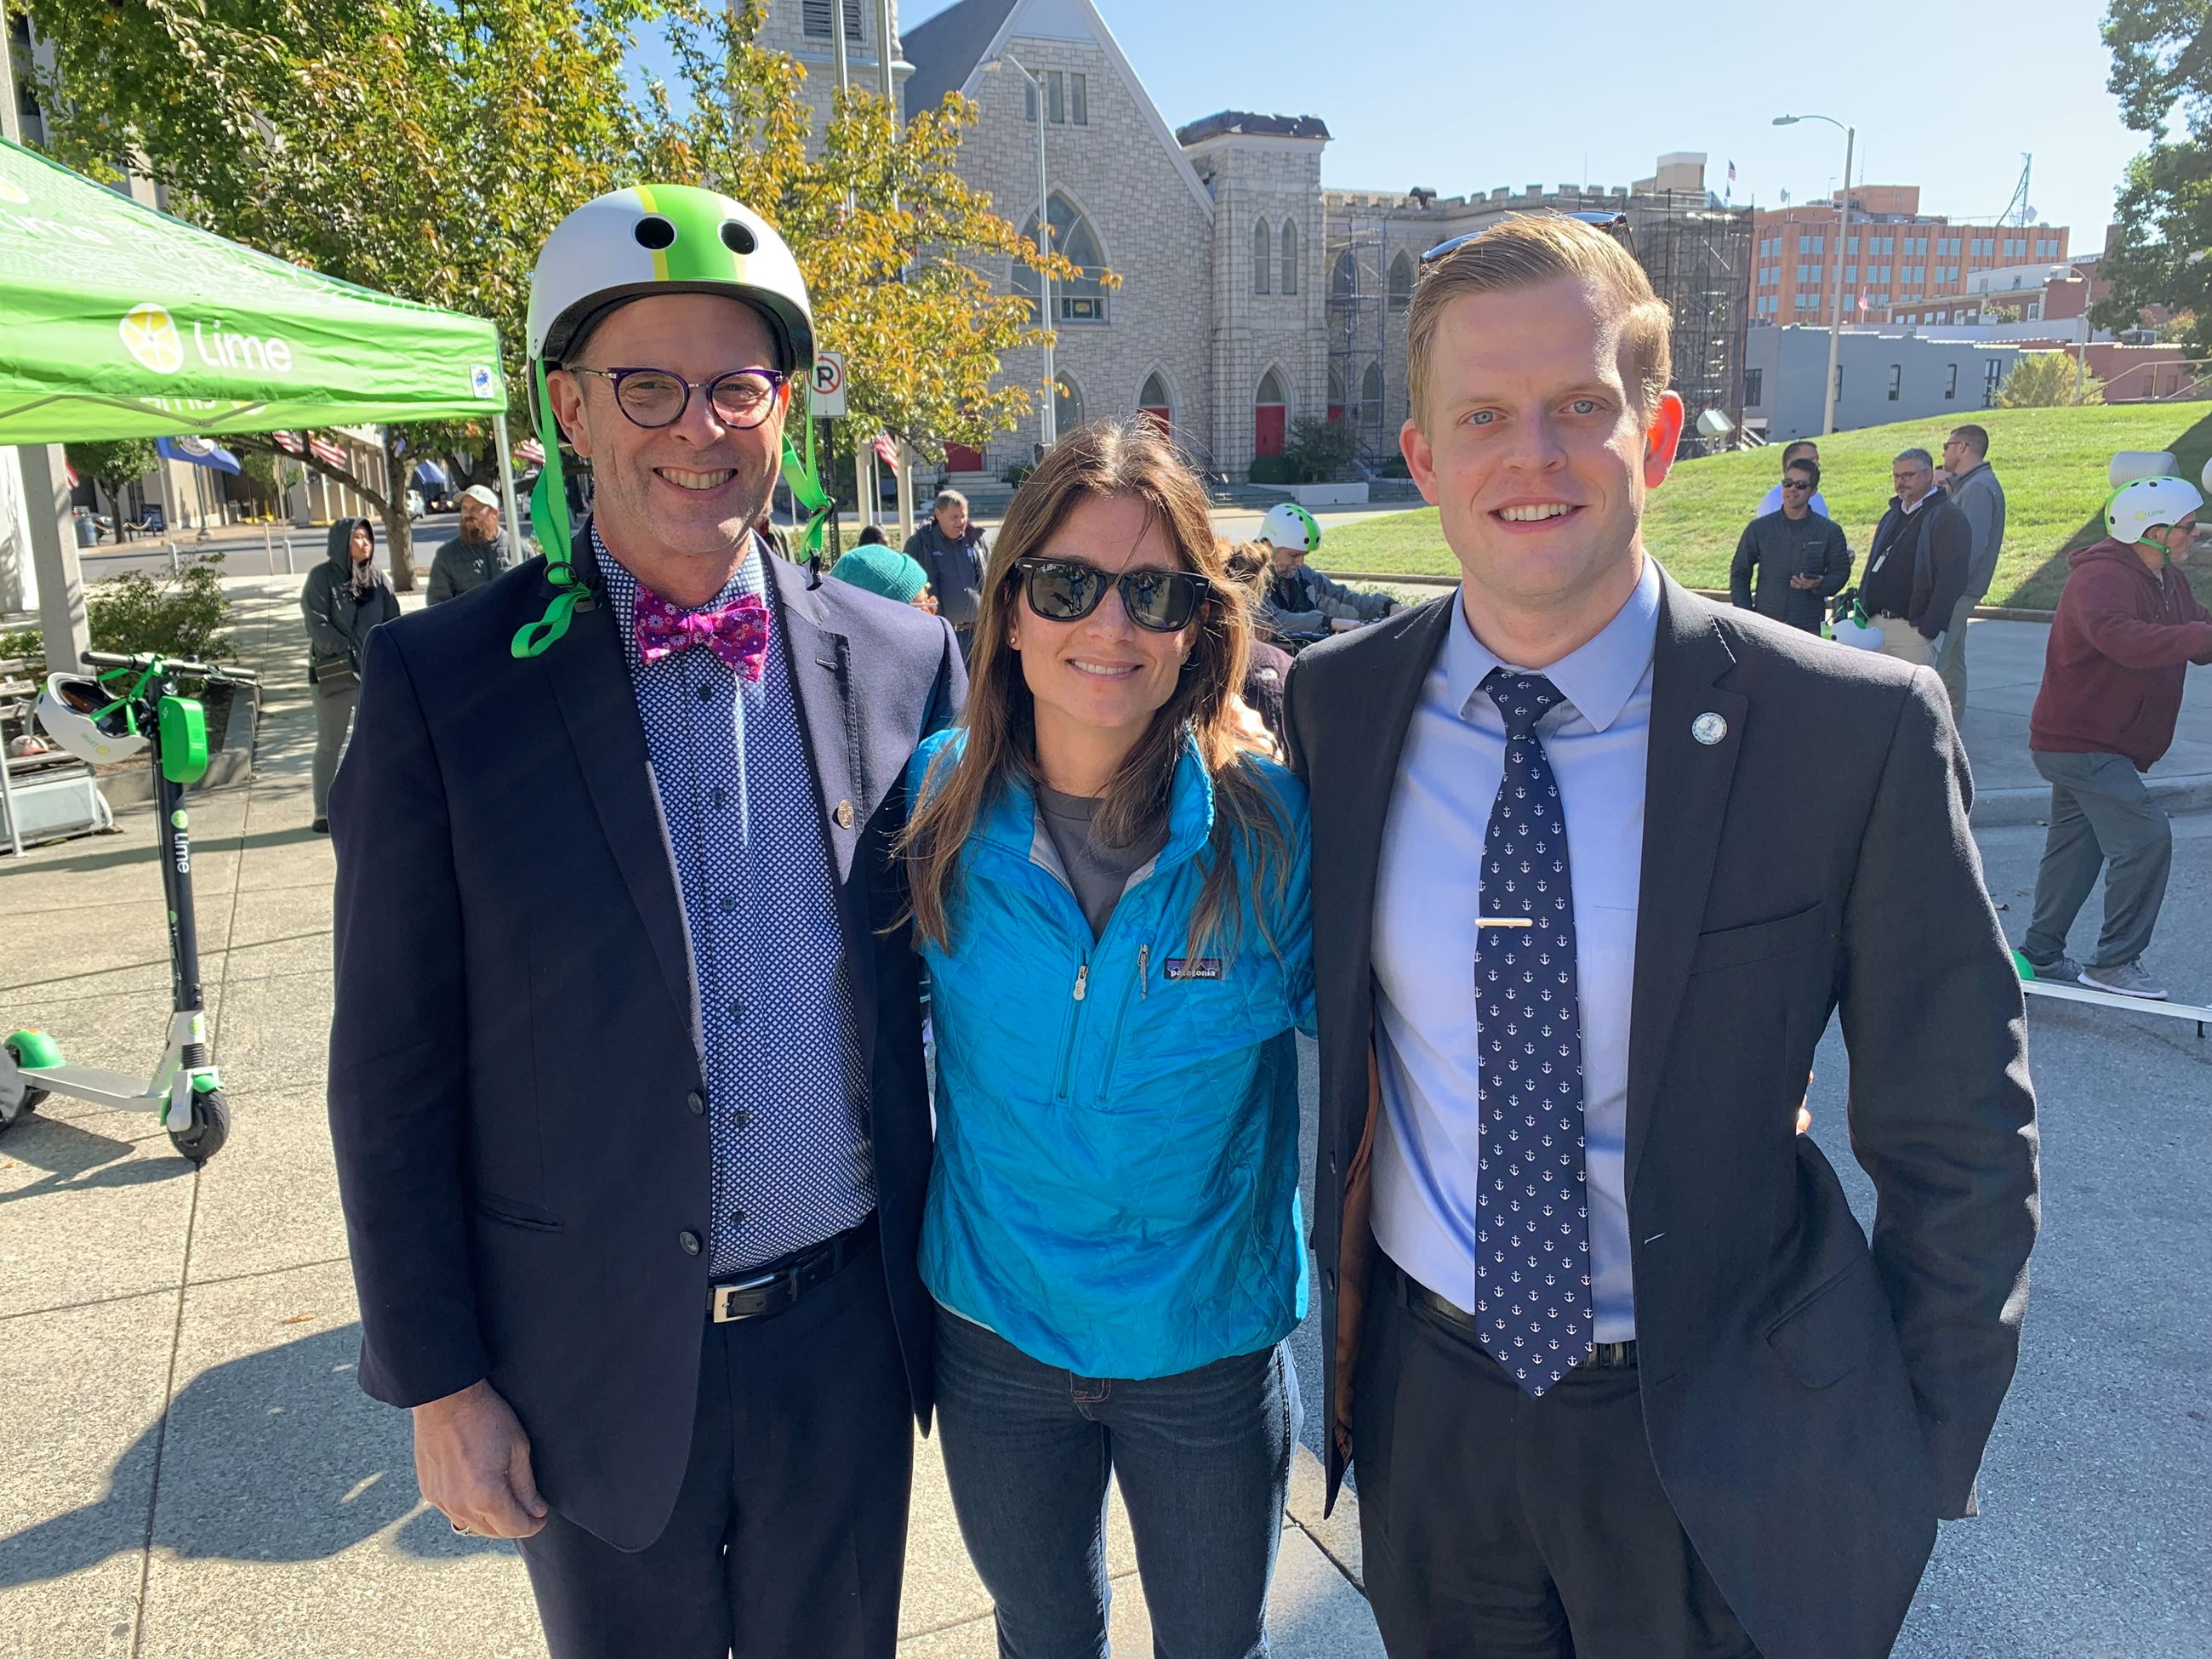 Vice Mayor Cobb & Councilwoman Osborne attend the roll out of the new Lime Scooters in downtown Roan